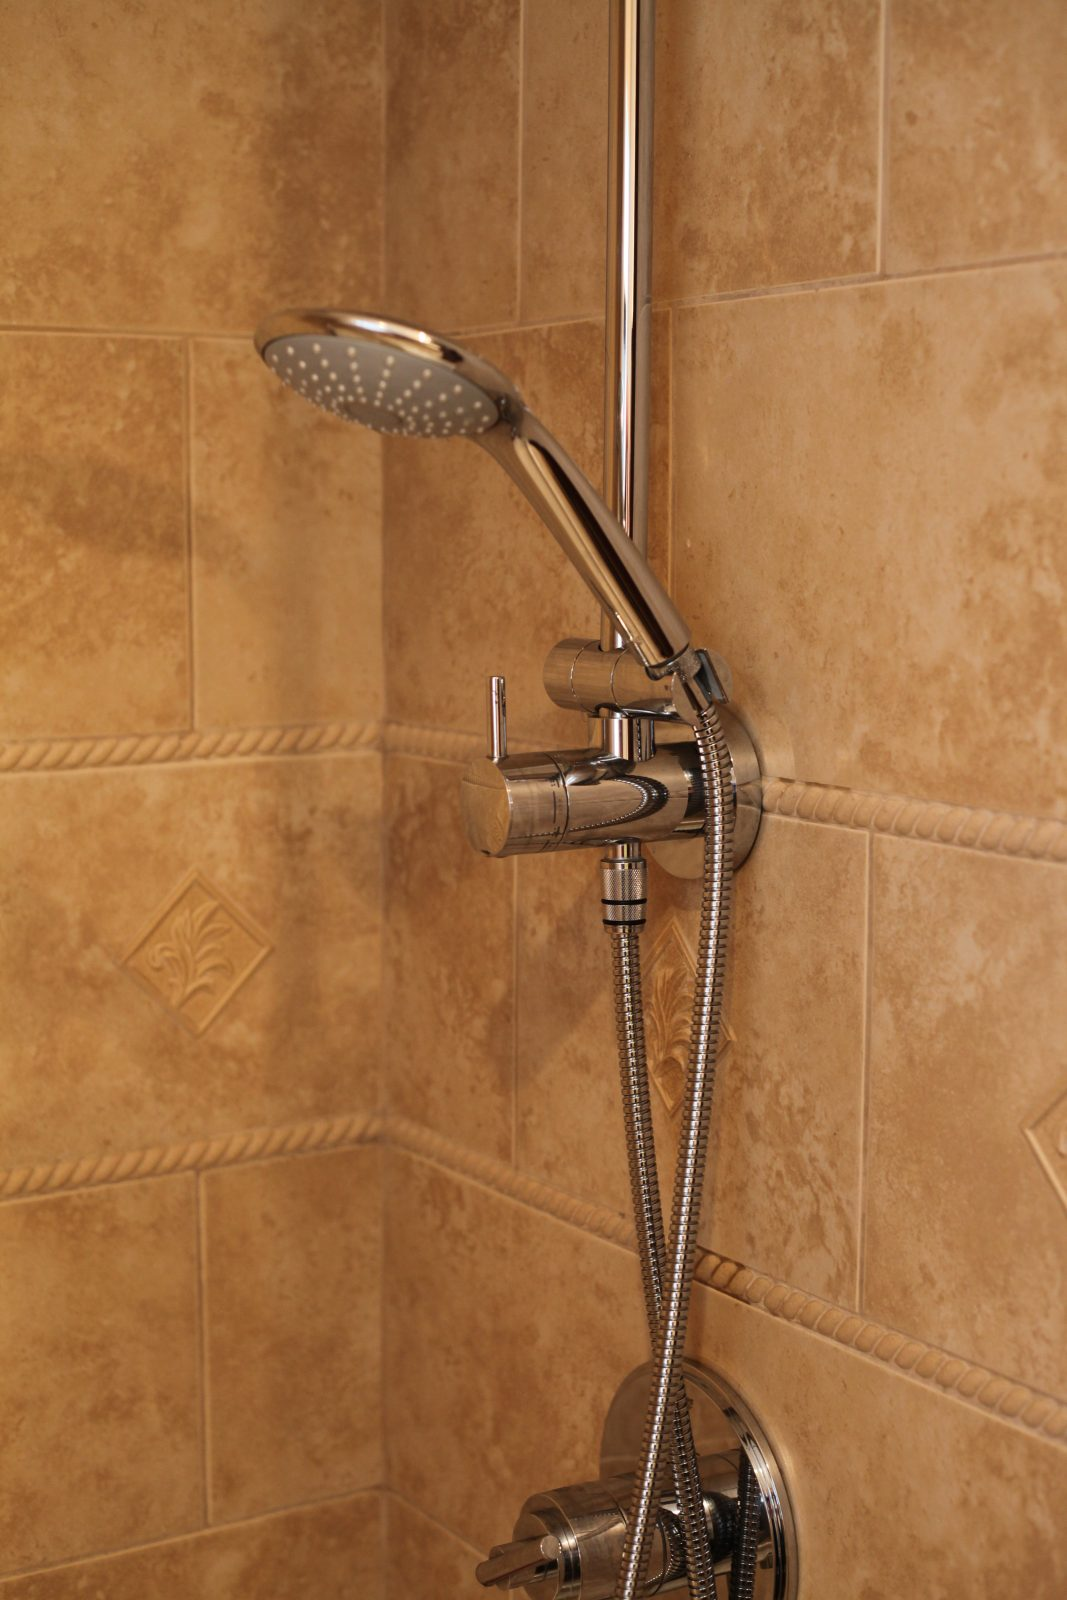 New construction and remodeling blue line plumbing services for Plumbing for new construction